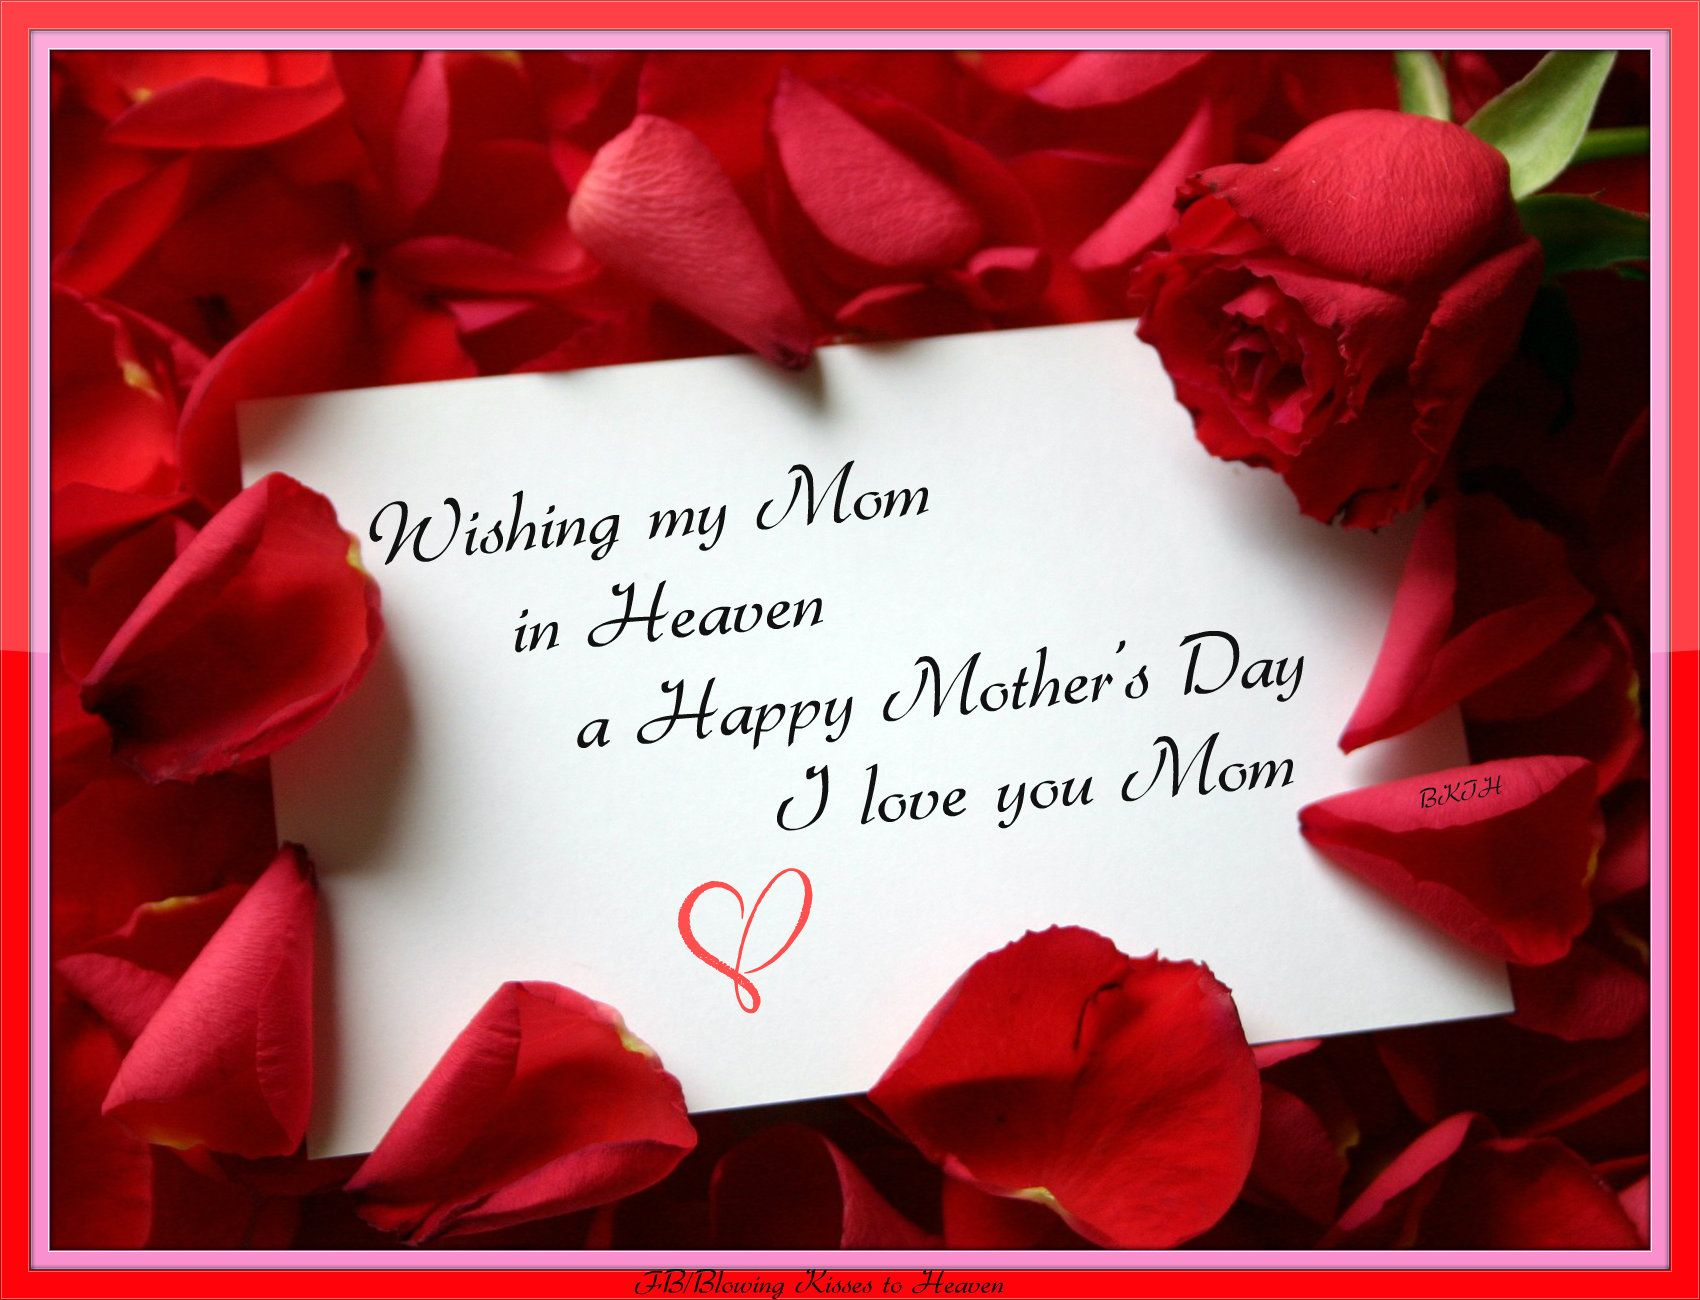 Happy Mother S Day To All The Well Deserving Moms Description From Pinterest Com I Searched For Thi Valentines Day Love Quotes Valentine Quotes Mom In Heaven